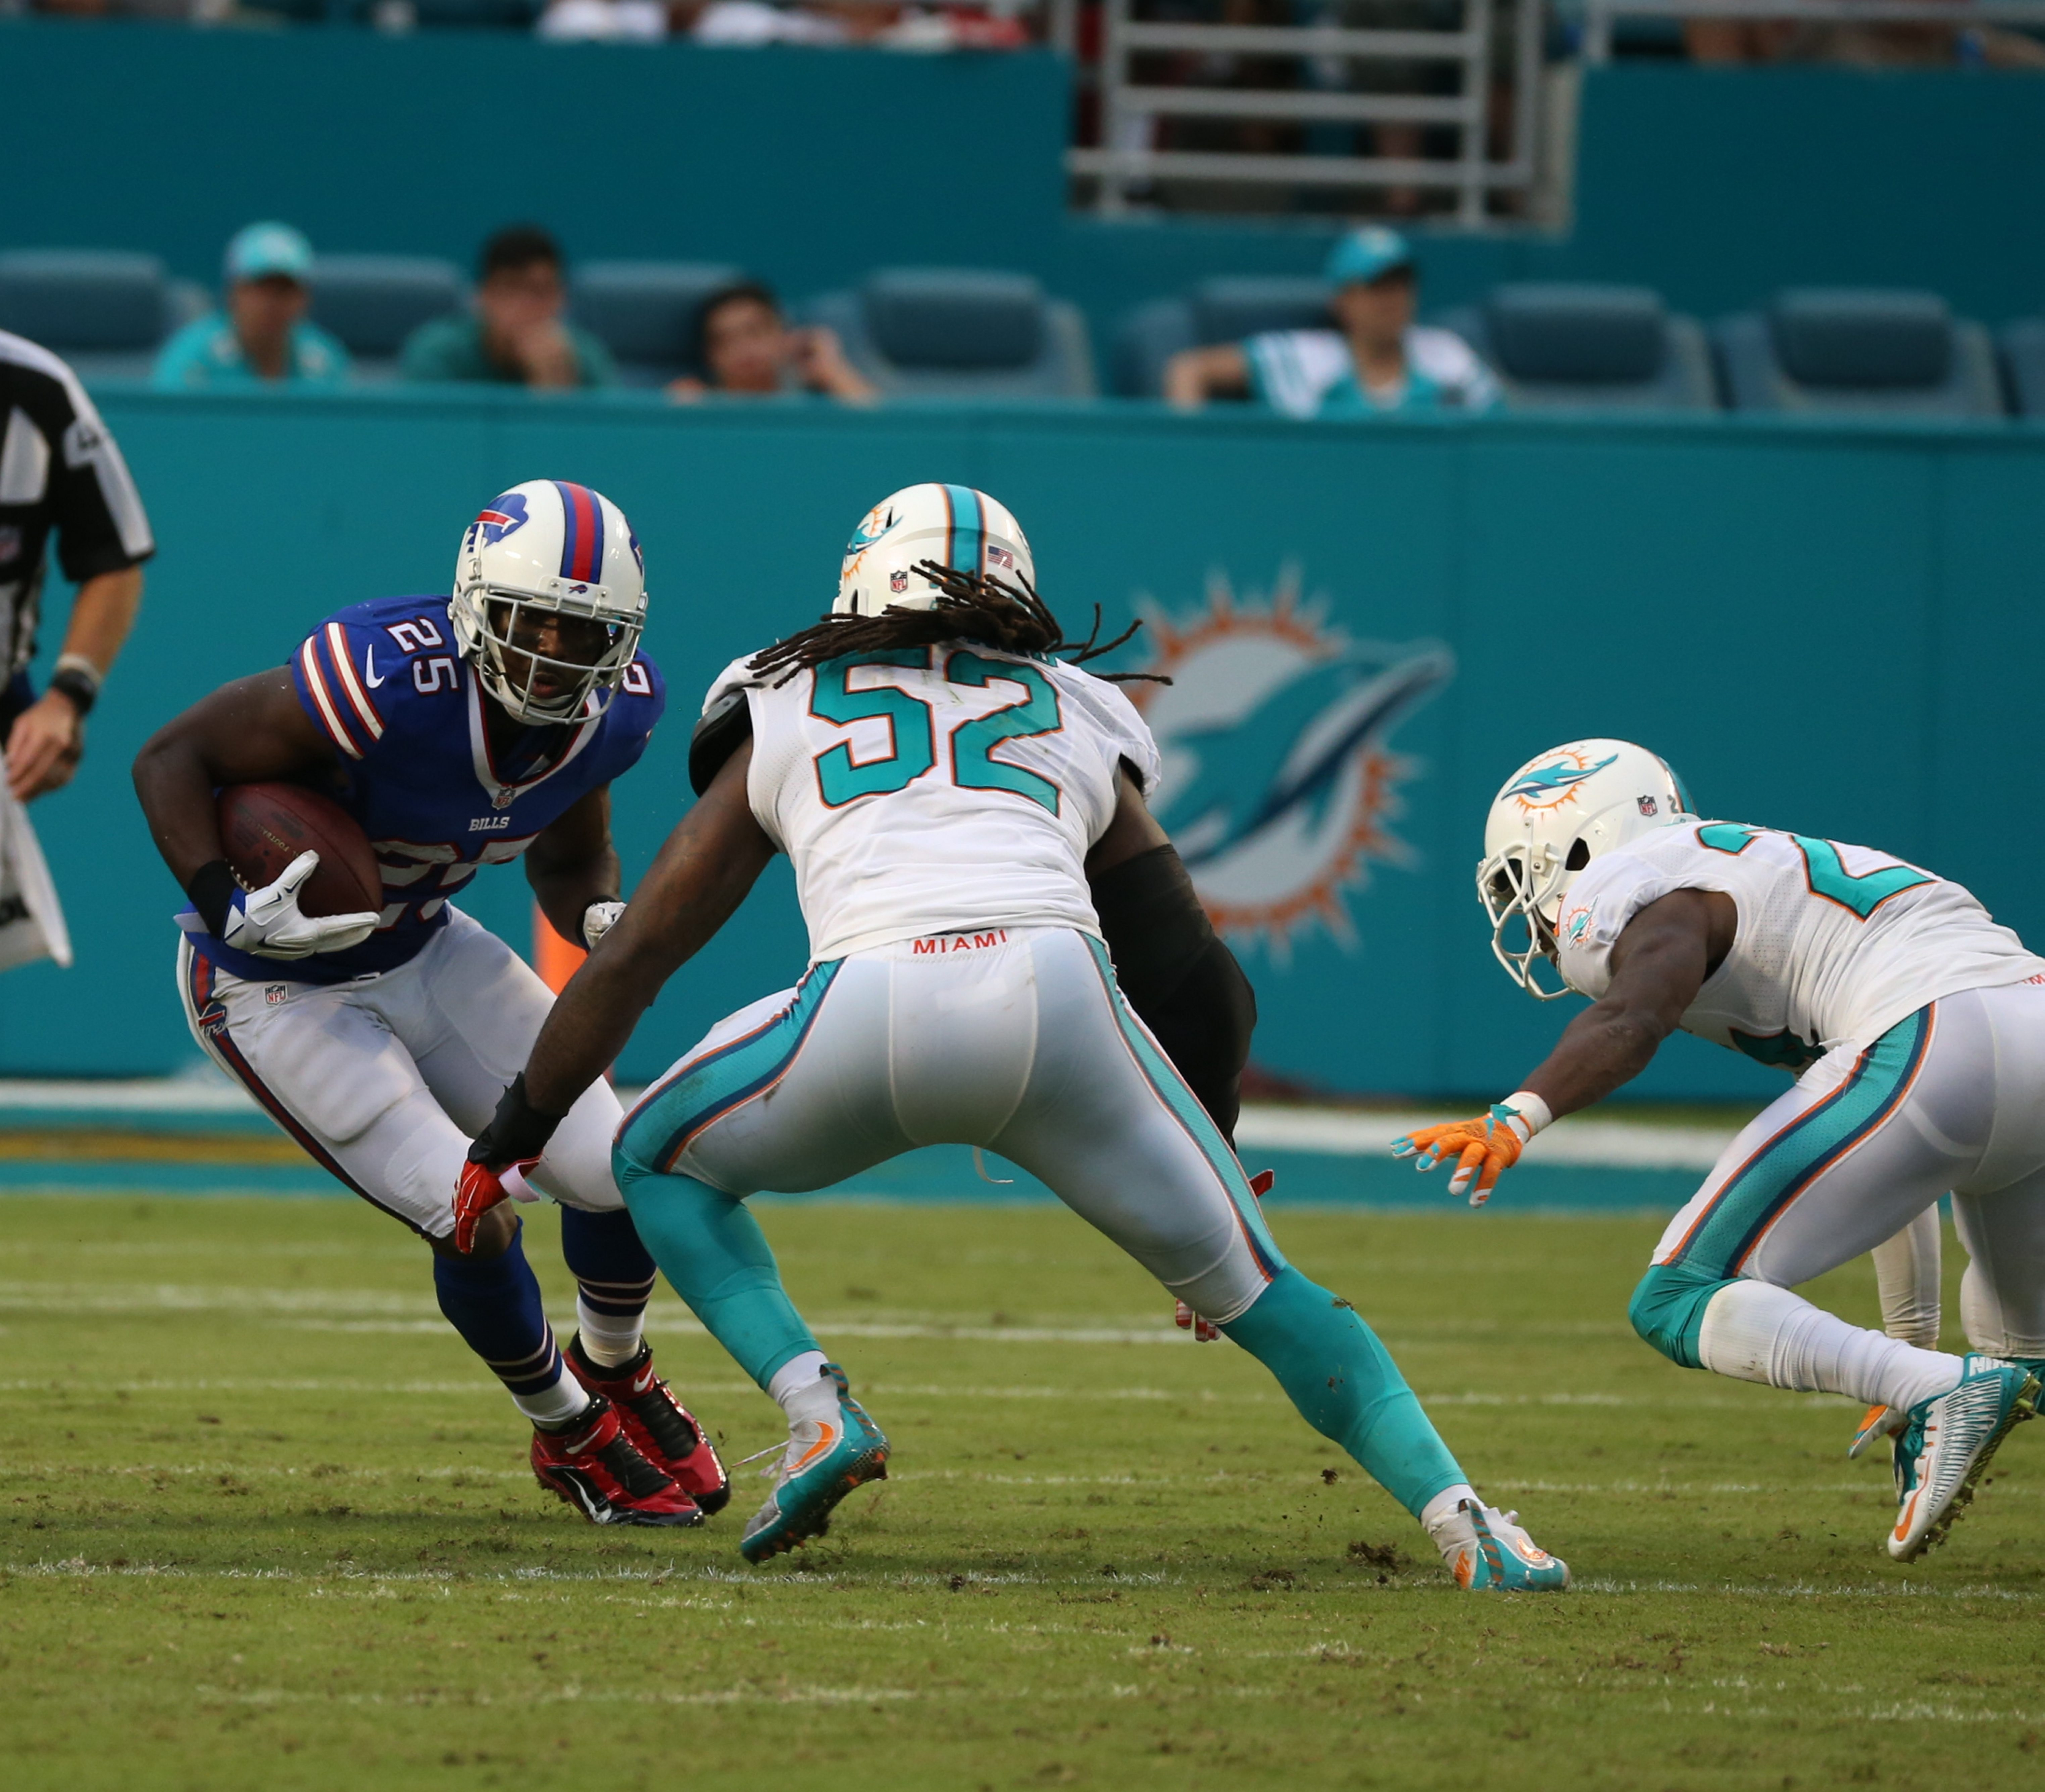 Running back LeSean McCoy didn't do much on the ground Sunday, but did haul in a touchdown reception.